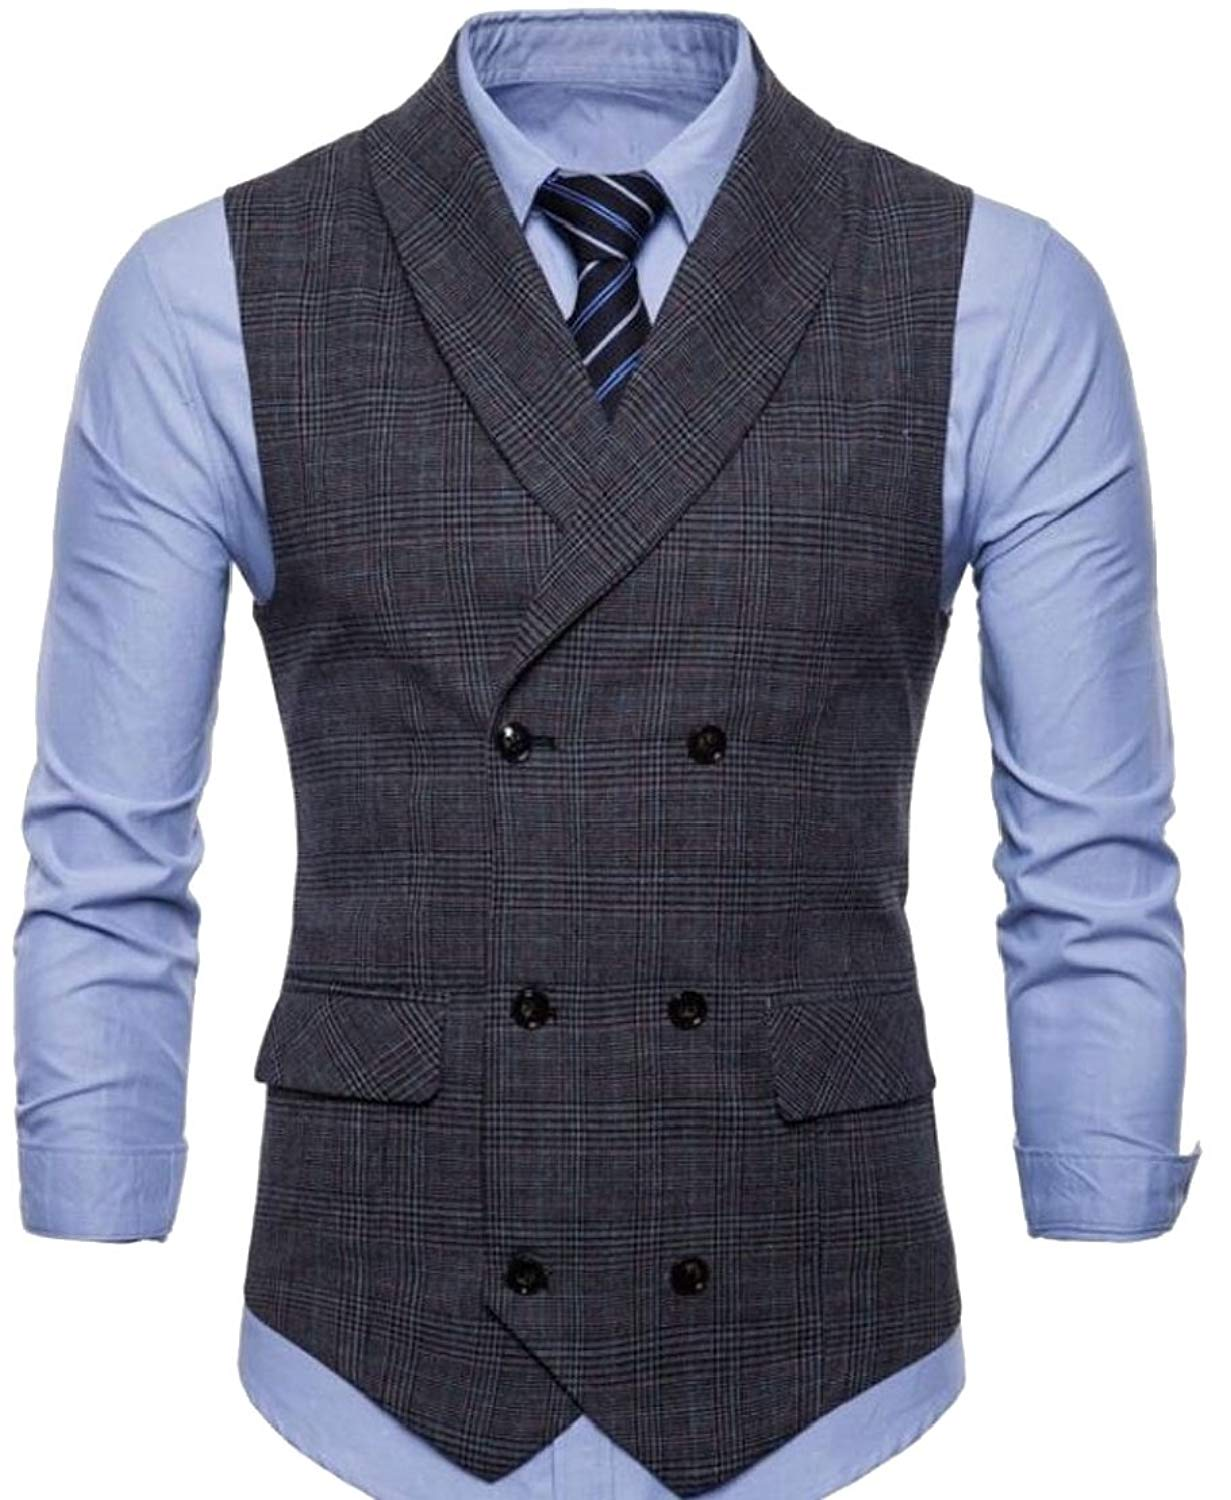 M/&S/&W Men Business Basic Plaid Suit Vest Double Breasted Slim Fit Dress Waistcoat